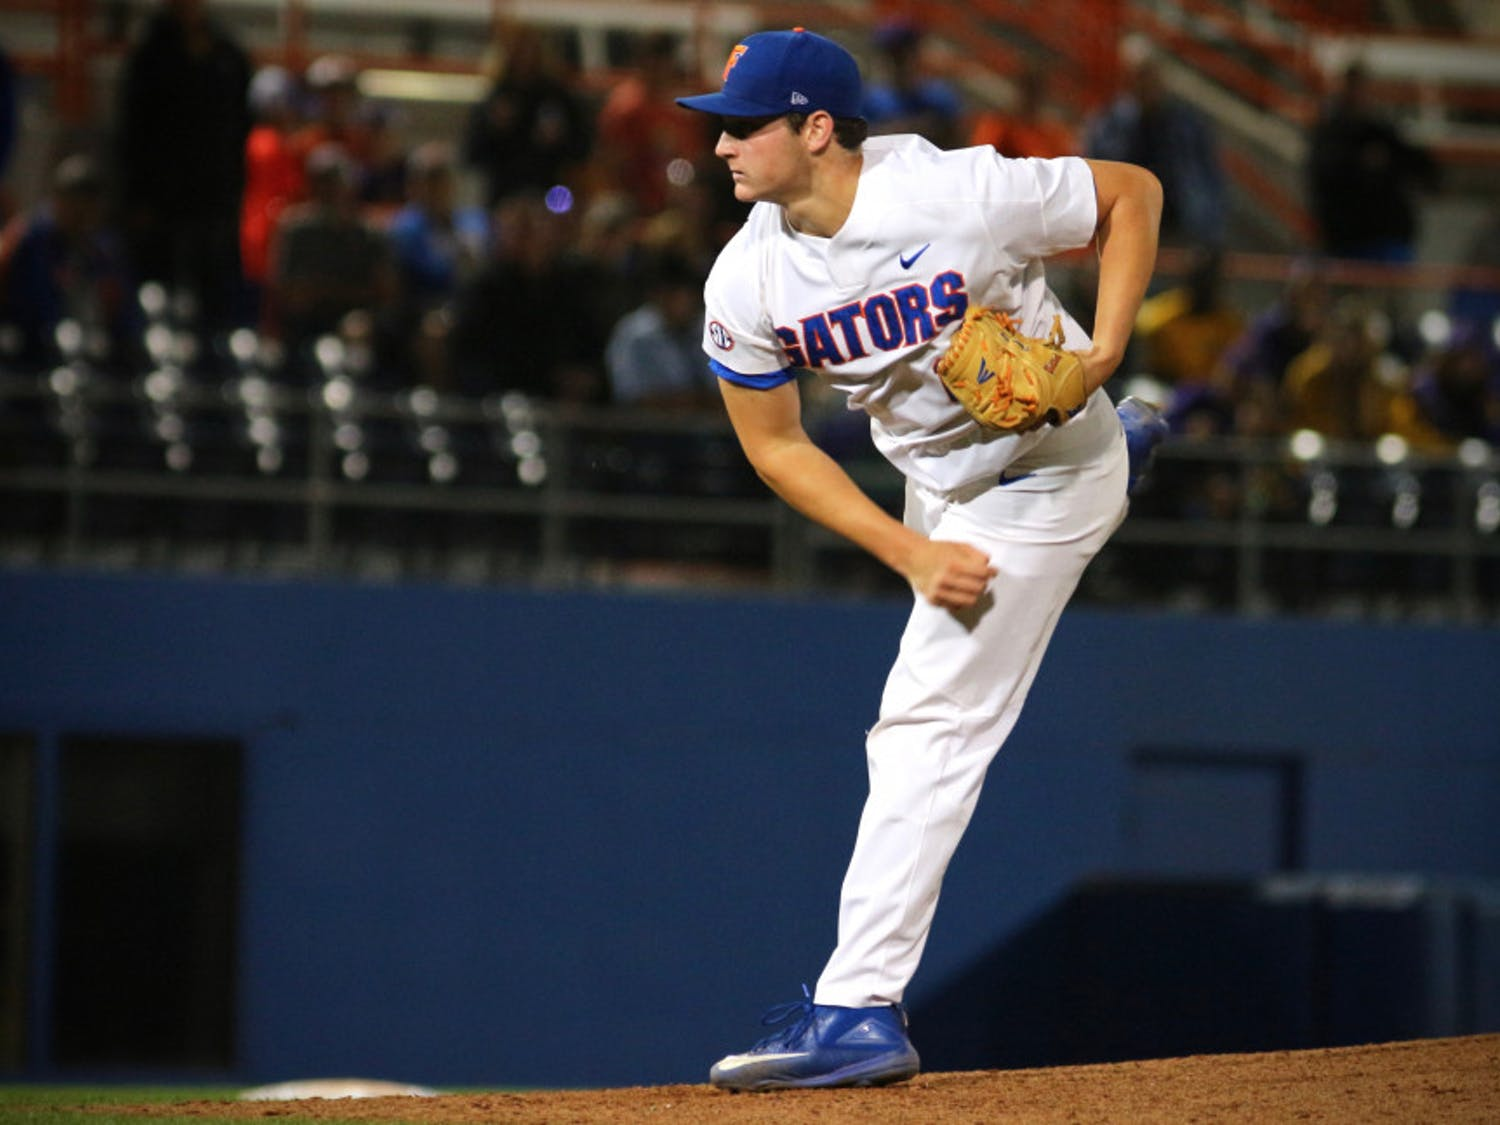 Tyler Dyson allowed three runs on four hits through 2.0-plus innings in Florida's 3-2 loss to Kentucky on Saturday. He didn't record a strikeout in his shortest outing of the season.